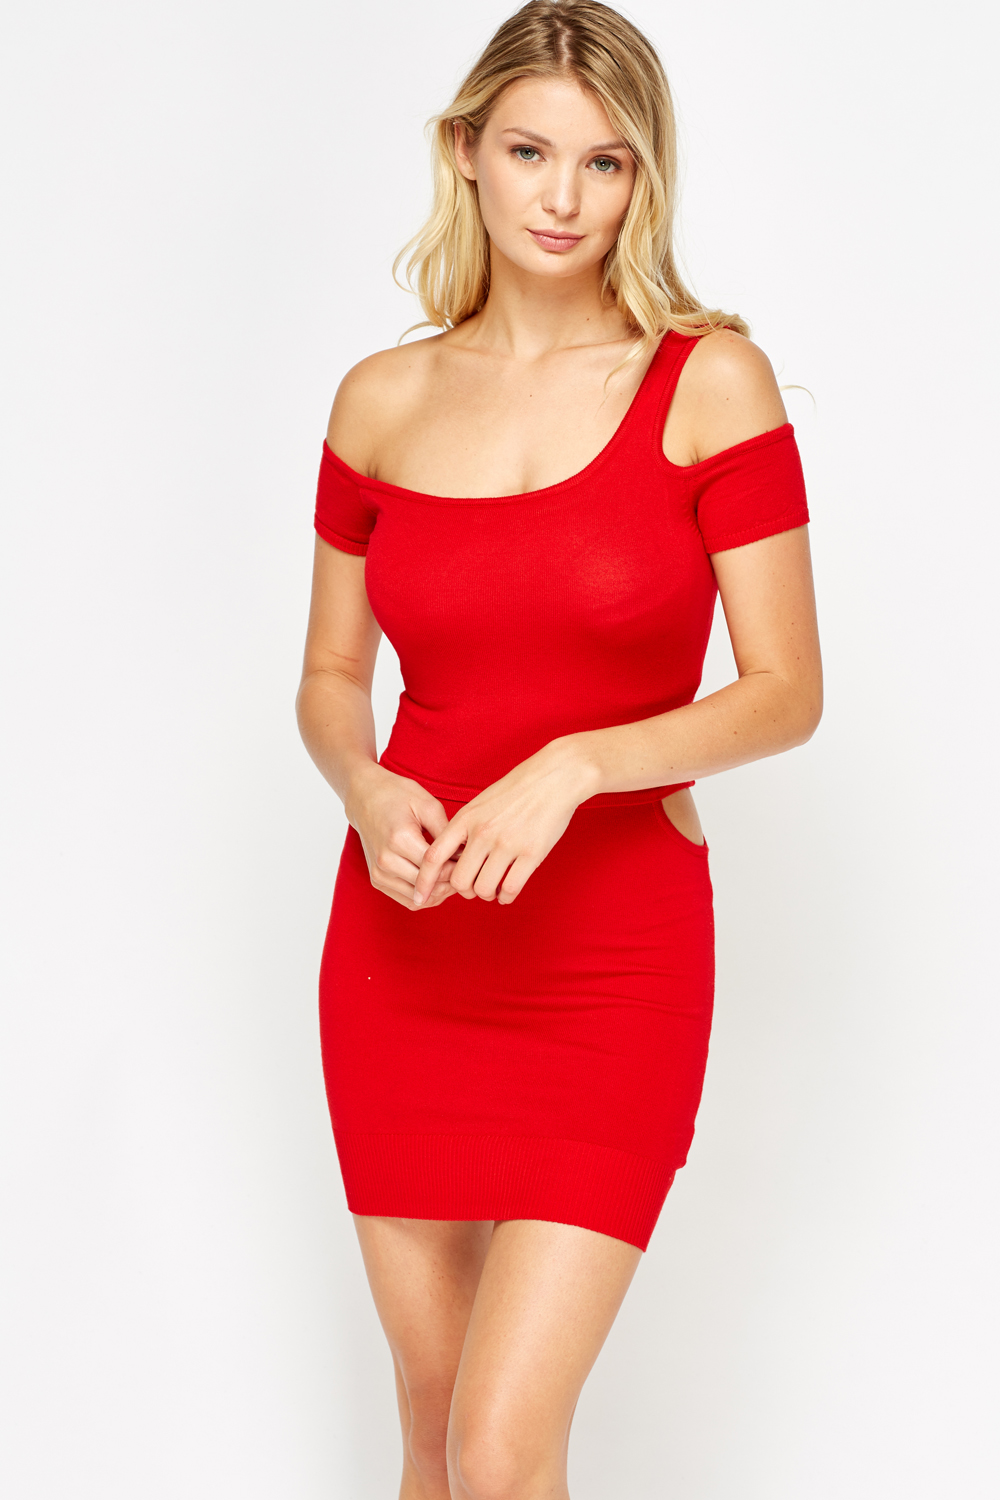 43f18aeb4489 Cut Out Bodycon Mini Dress - Just £2